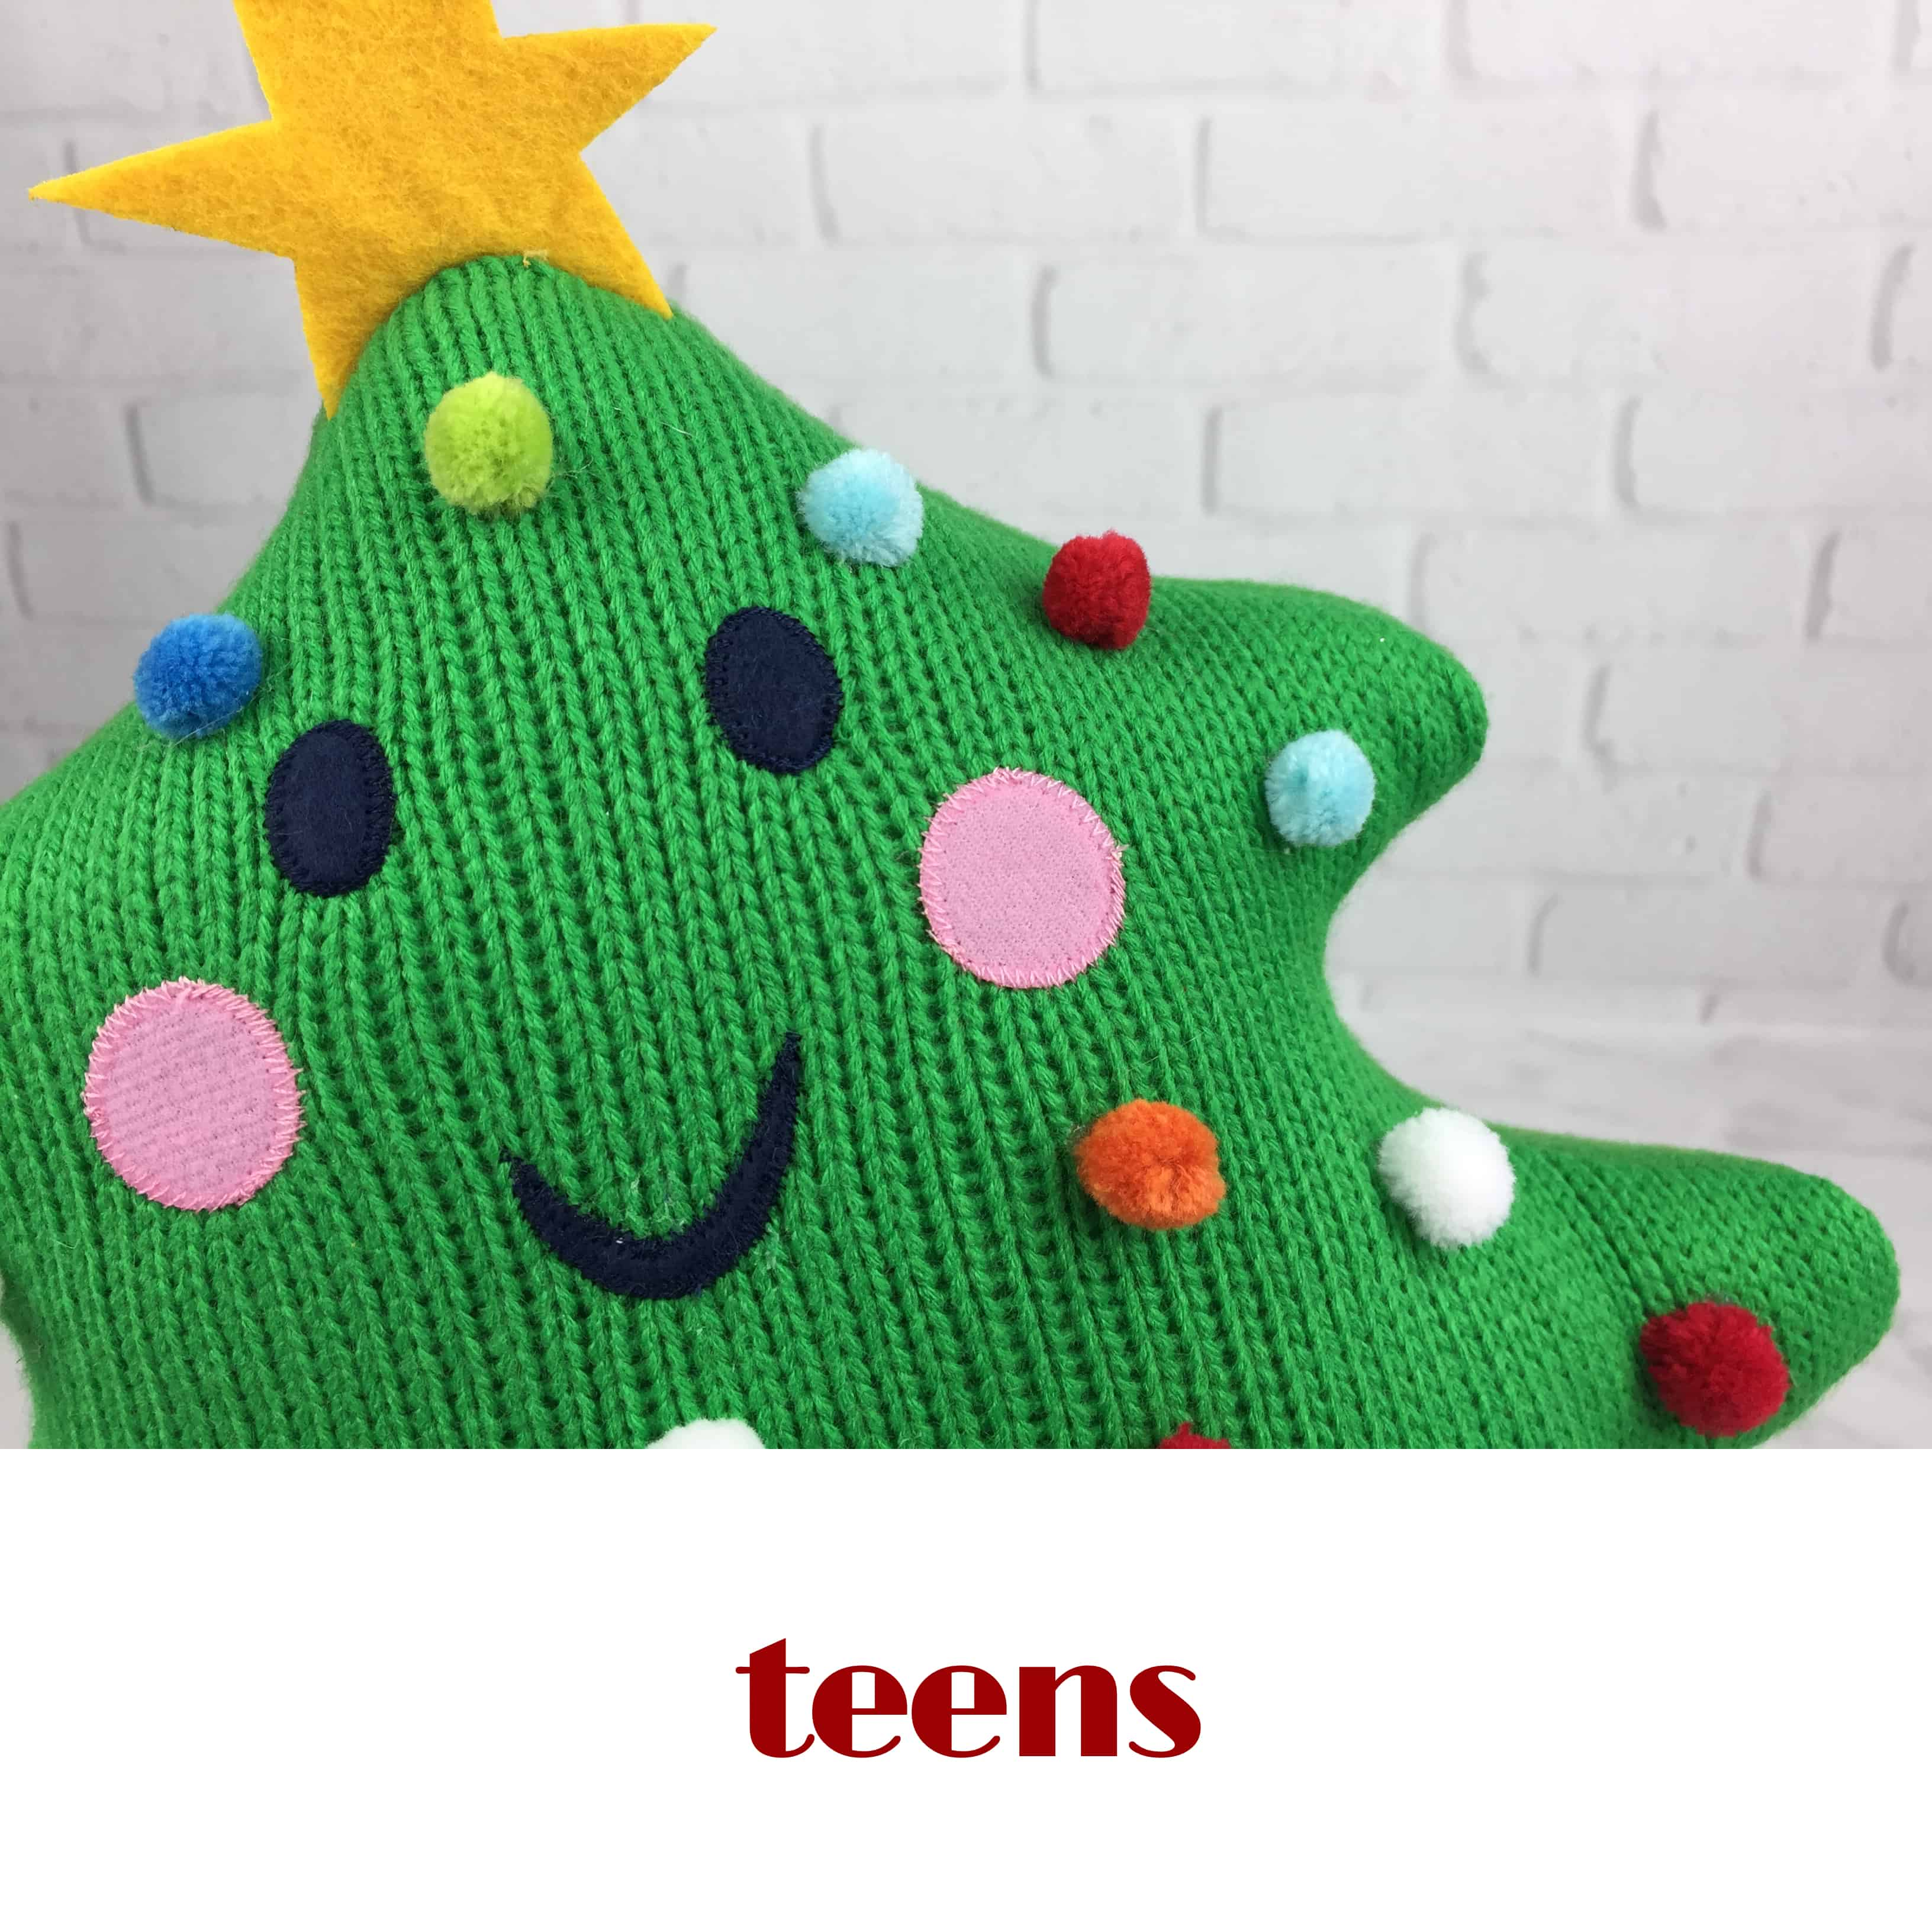 Best Subscription Box Gift Ideas for Teens & Tweens